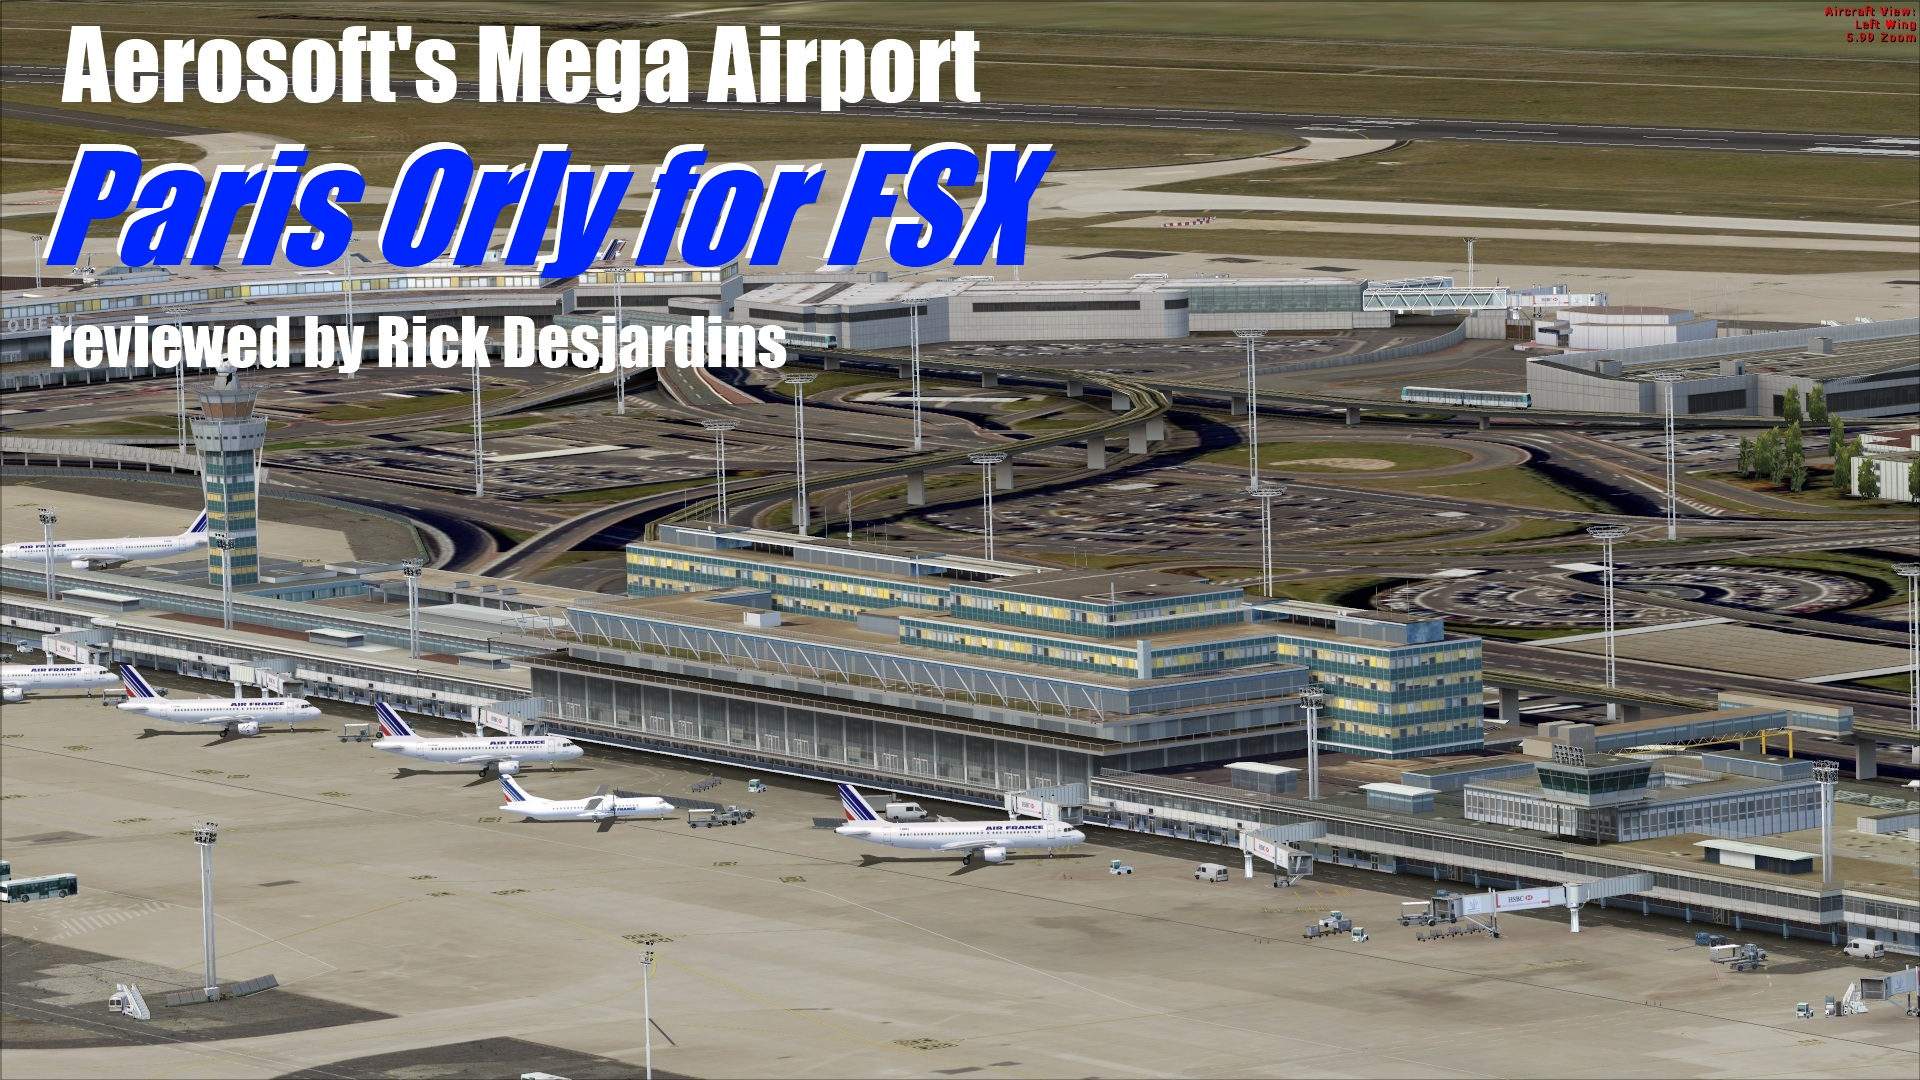 Aeroporto Orly : Review: aerosoft mega airport paris orly for fsx paris orly